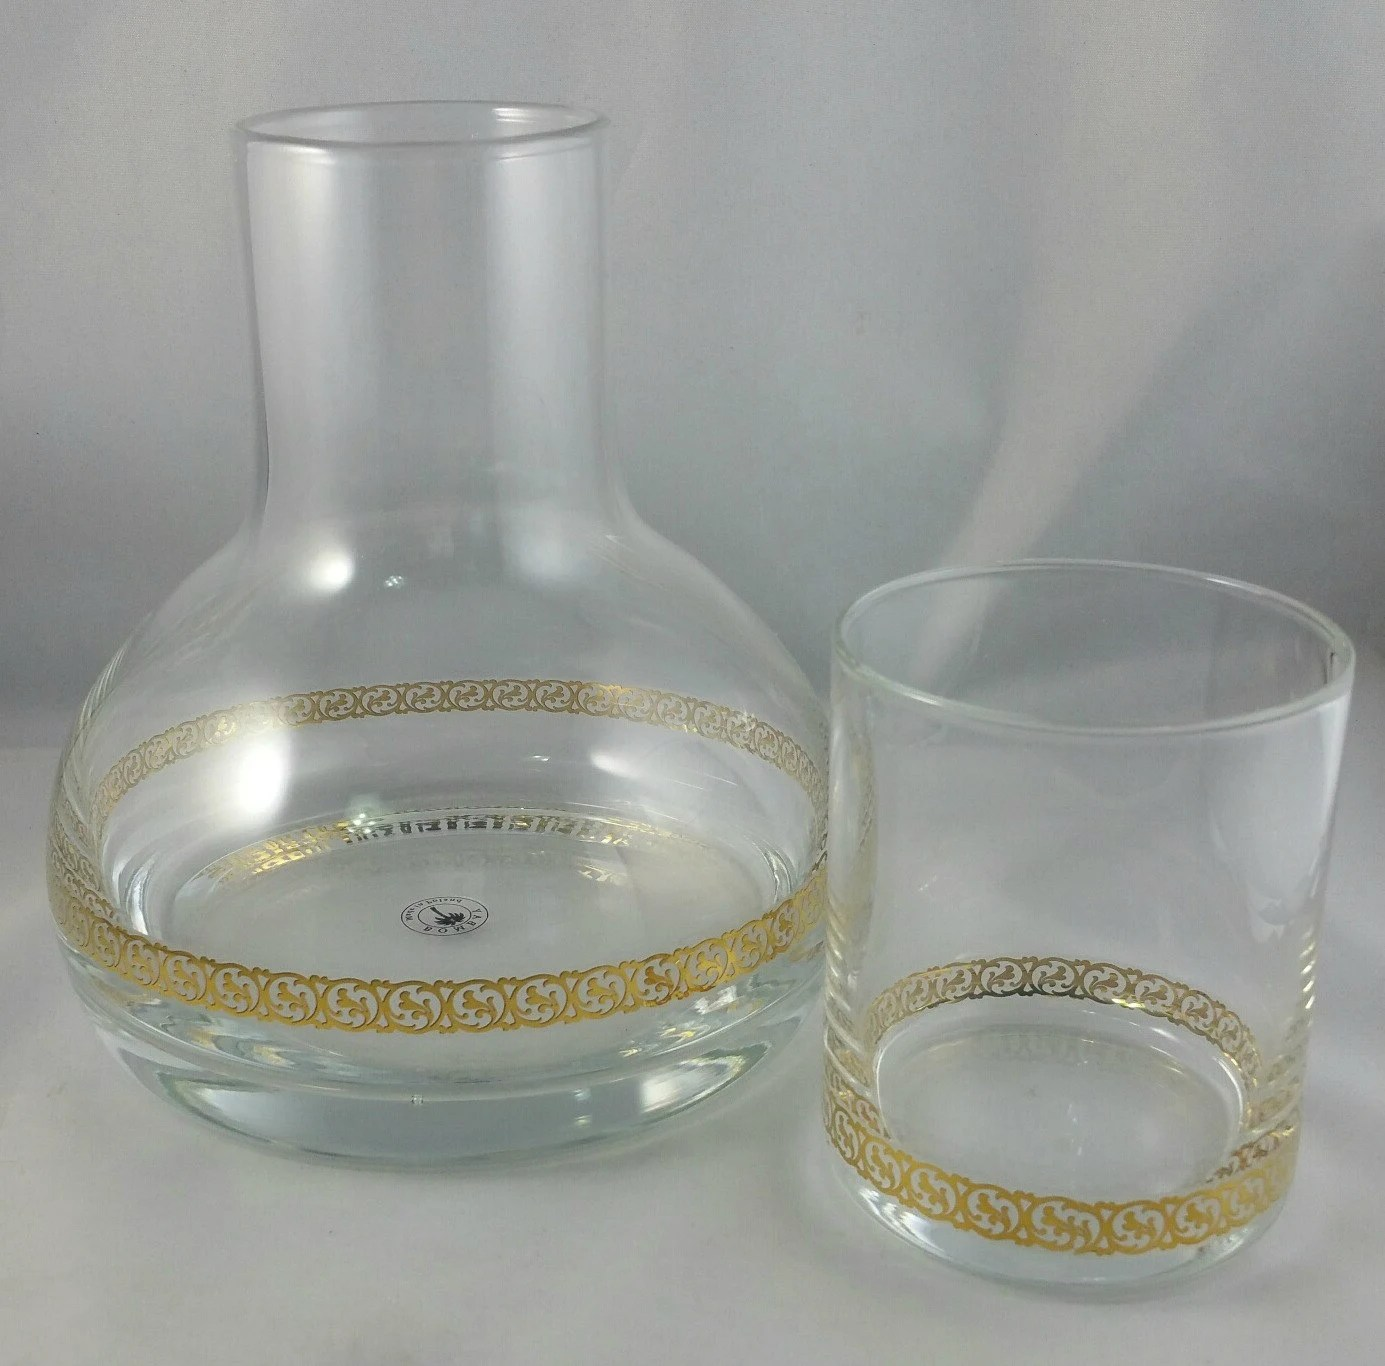 Bedside Water Carafe And Glass Vintage Bedside Water Carafe With Drinking Glass Bombay